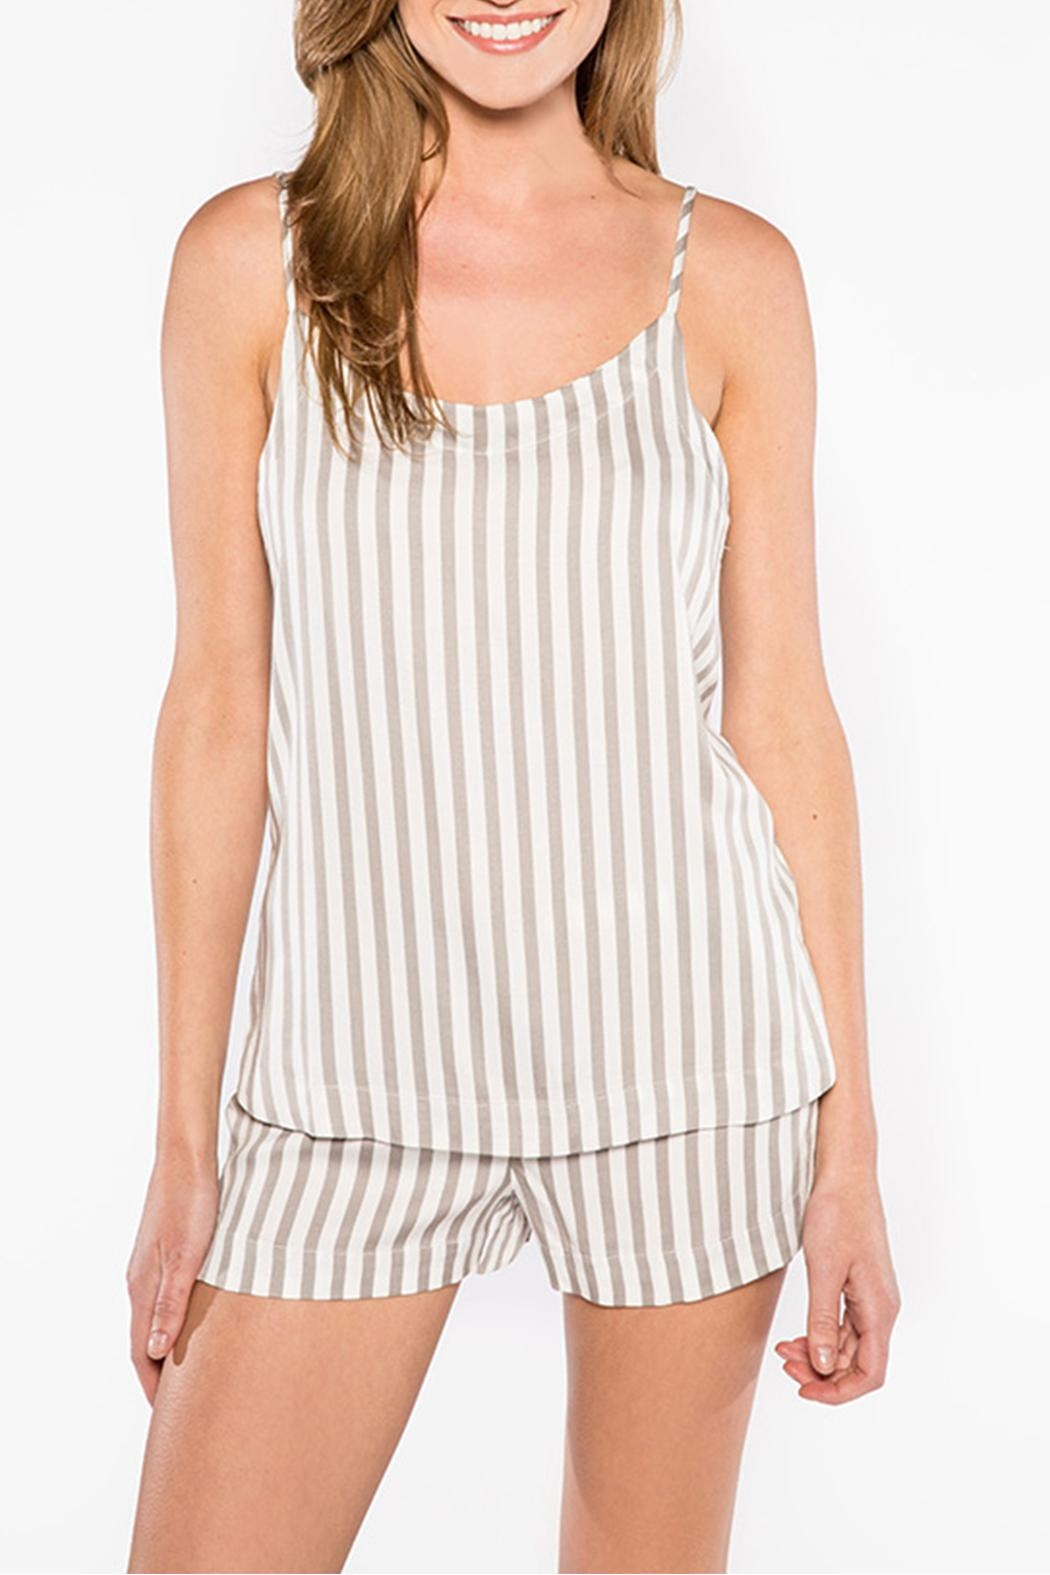 PJ Salvage Striped Cami - Main Image